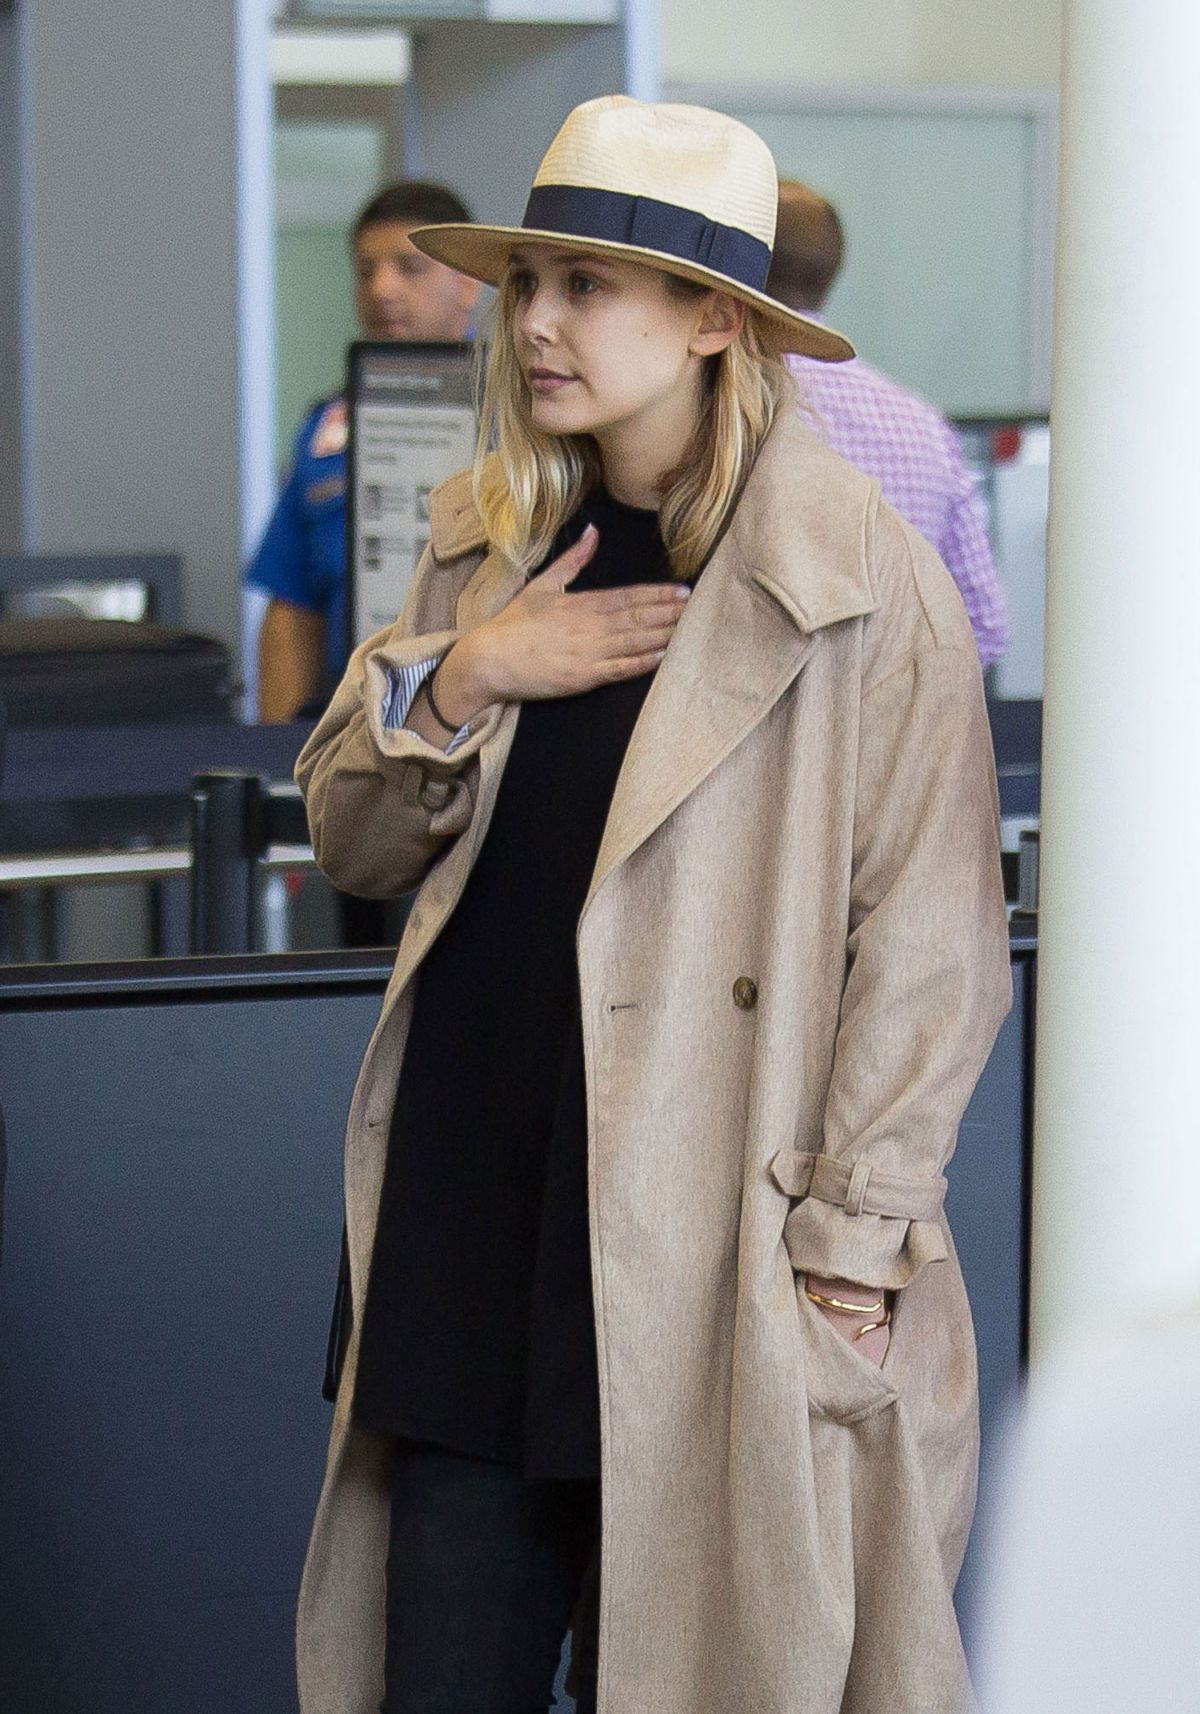 ELIZABETH OLSEN Departing from LAX Airport 04/19/2015